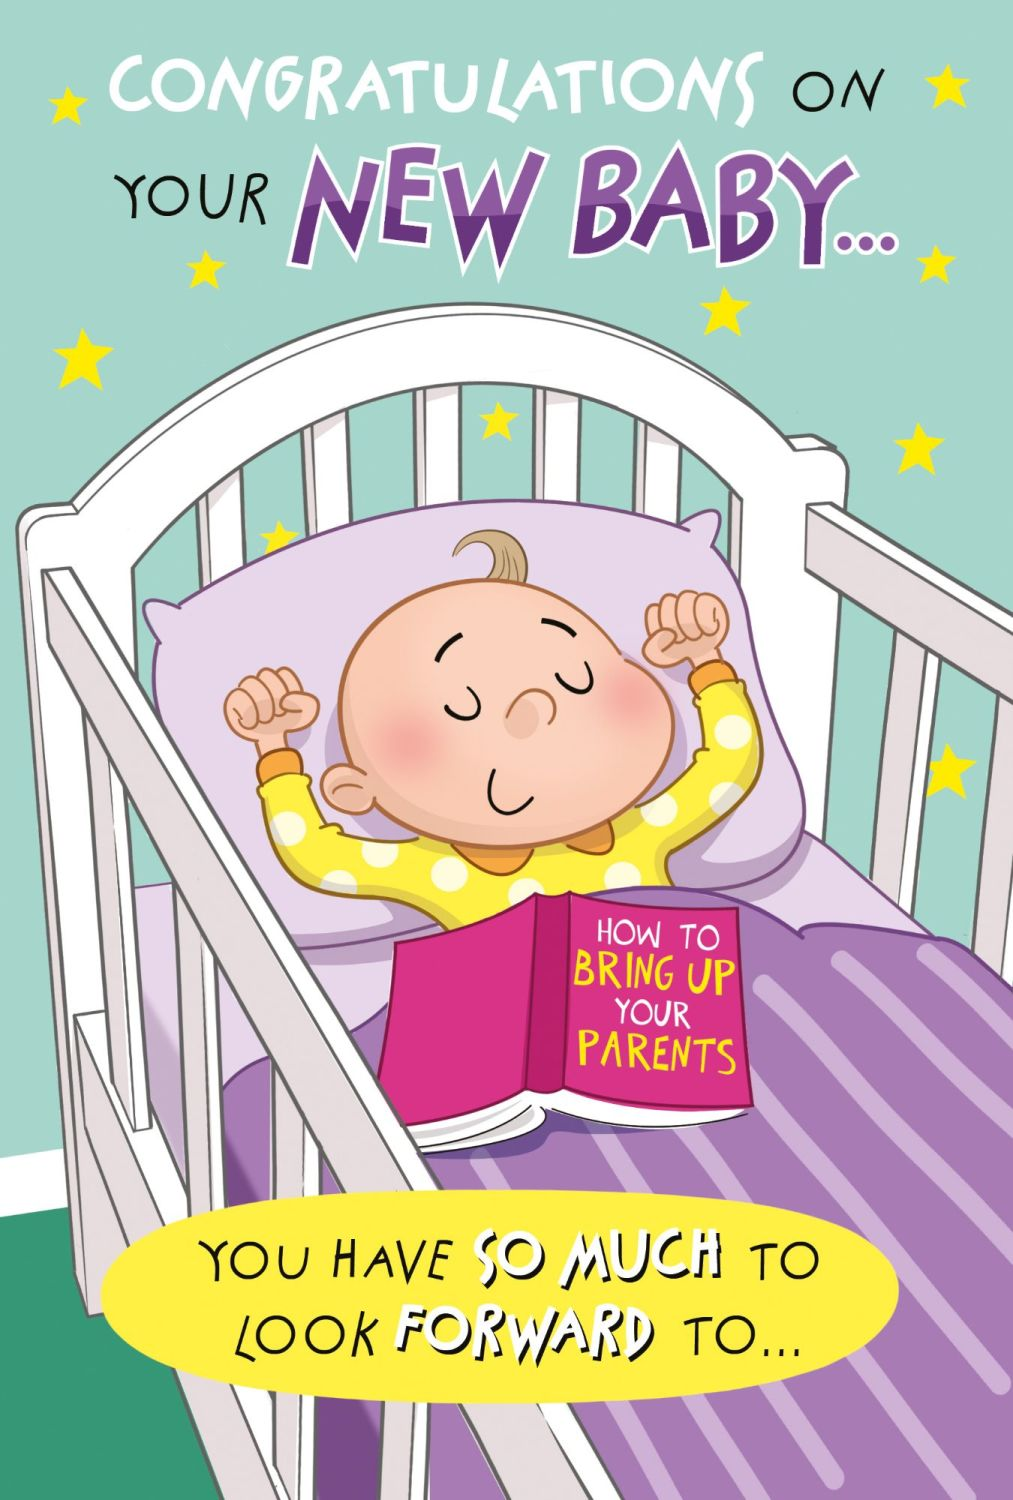 Funny New Baby Cards - YOU Have So MUCH To Look FORWARD To - CONGRATULATION